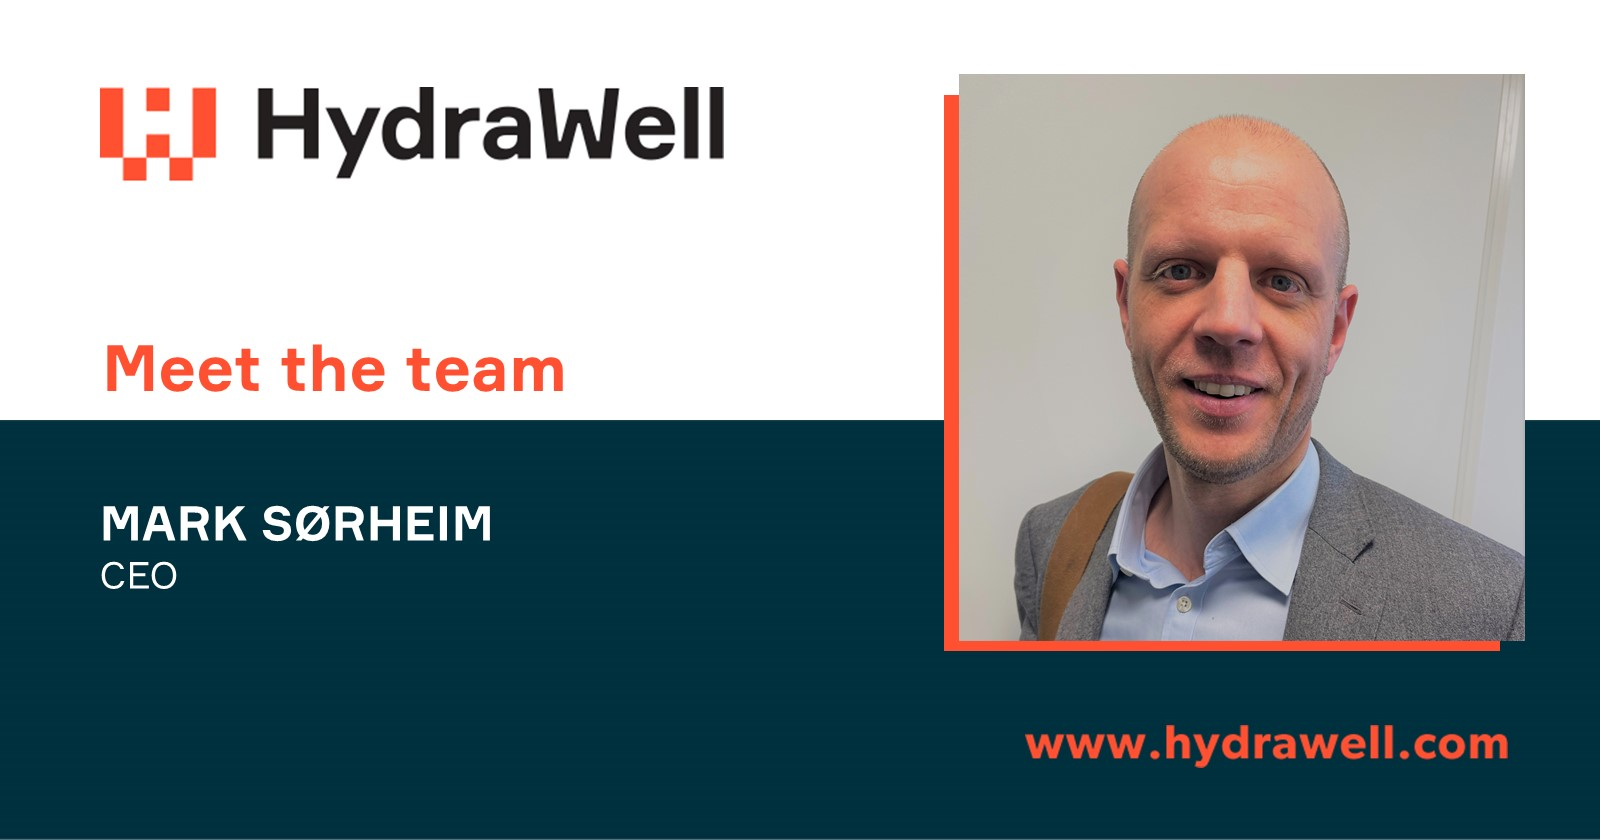 Meet the team - Mark Sørheim